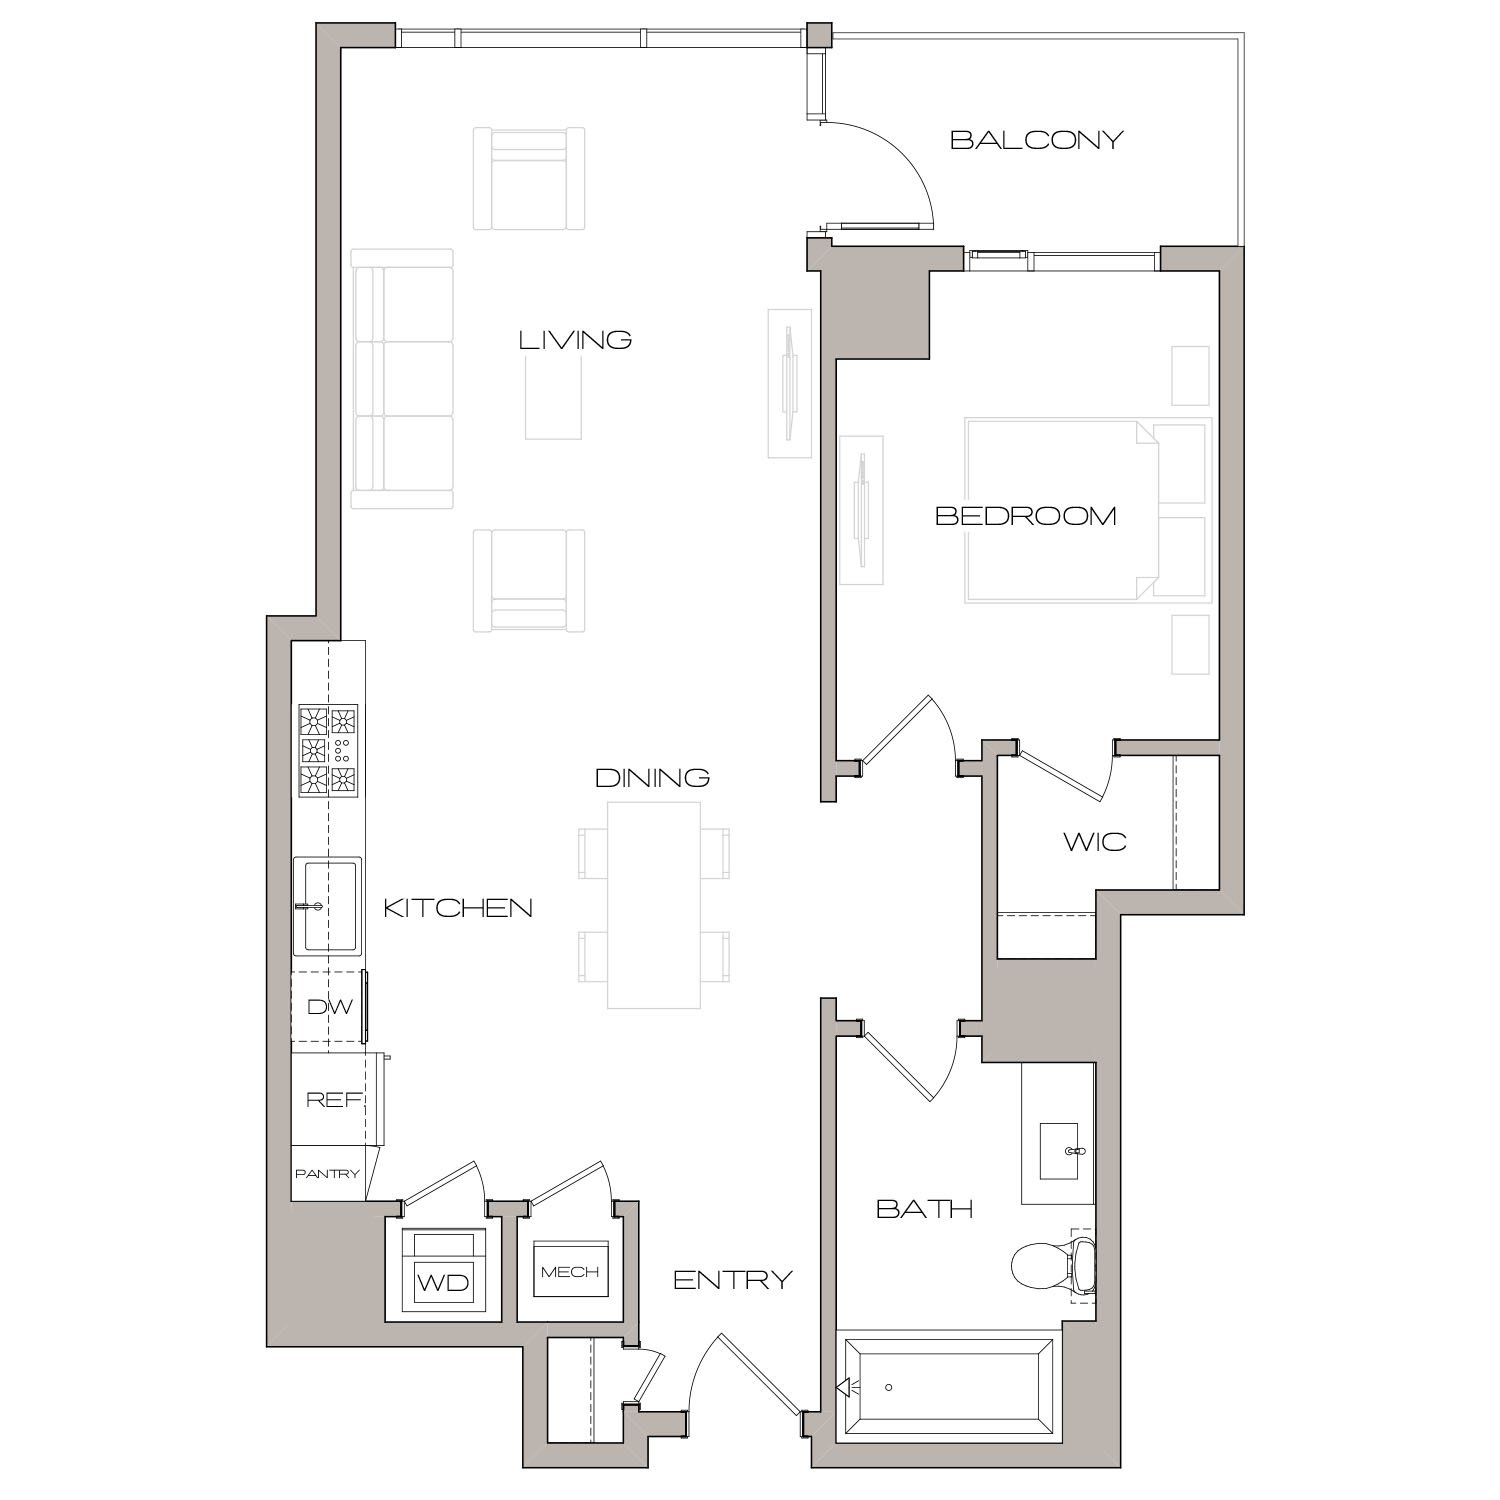 A 4 floor plan diagram. One bedroom, one bathroom, an open kitchen and living area, a balcony, and a washer dryer.